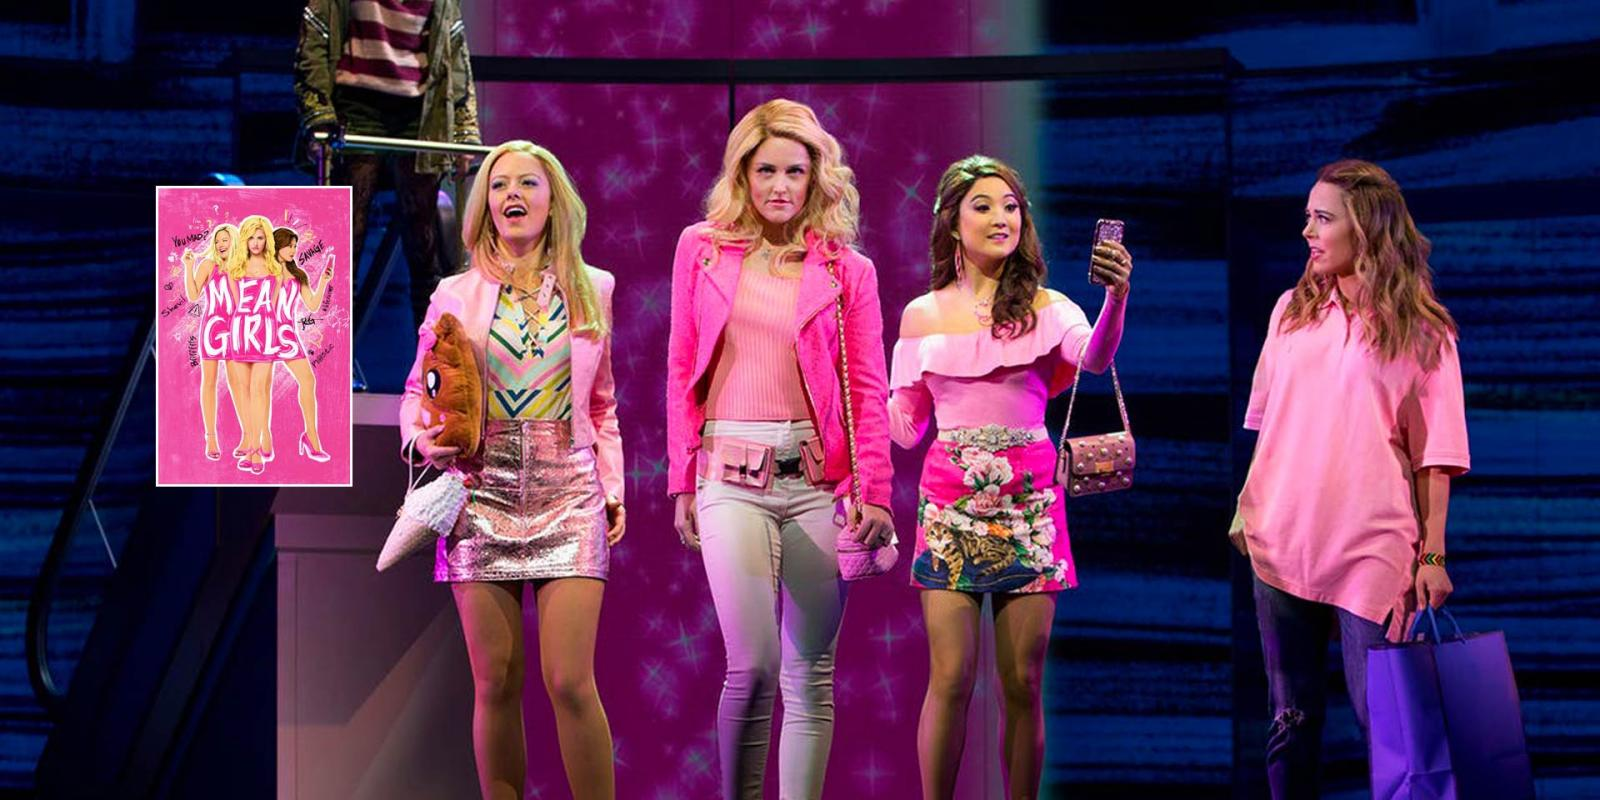 Add to myNY Home › Musicals › Mean Girls on Broadway